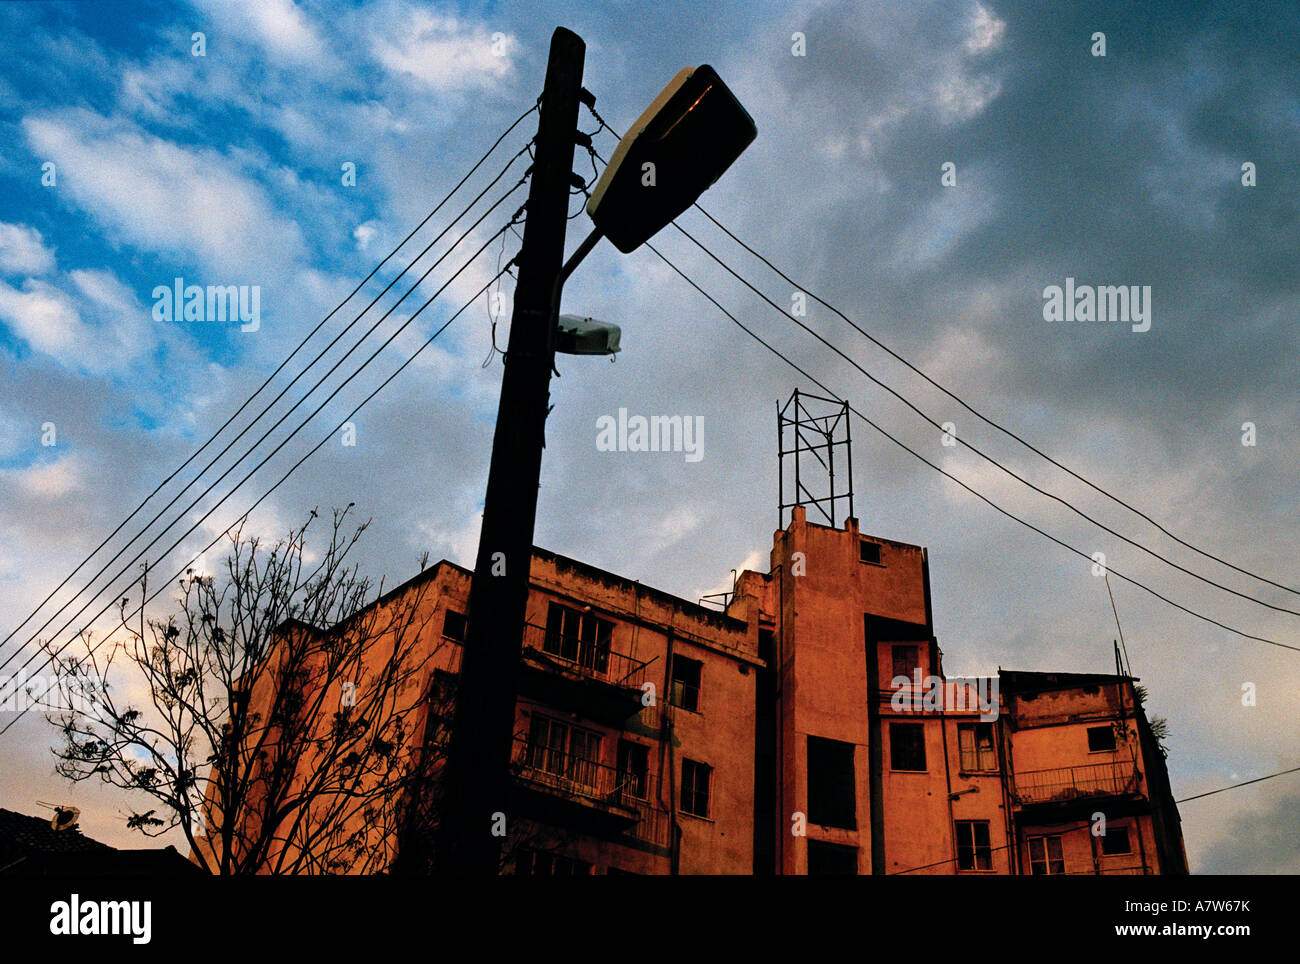 Telephone Pole Wires Lamppost Stock Photos & Telephone Pole Wires ...